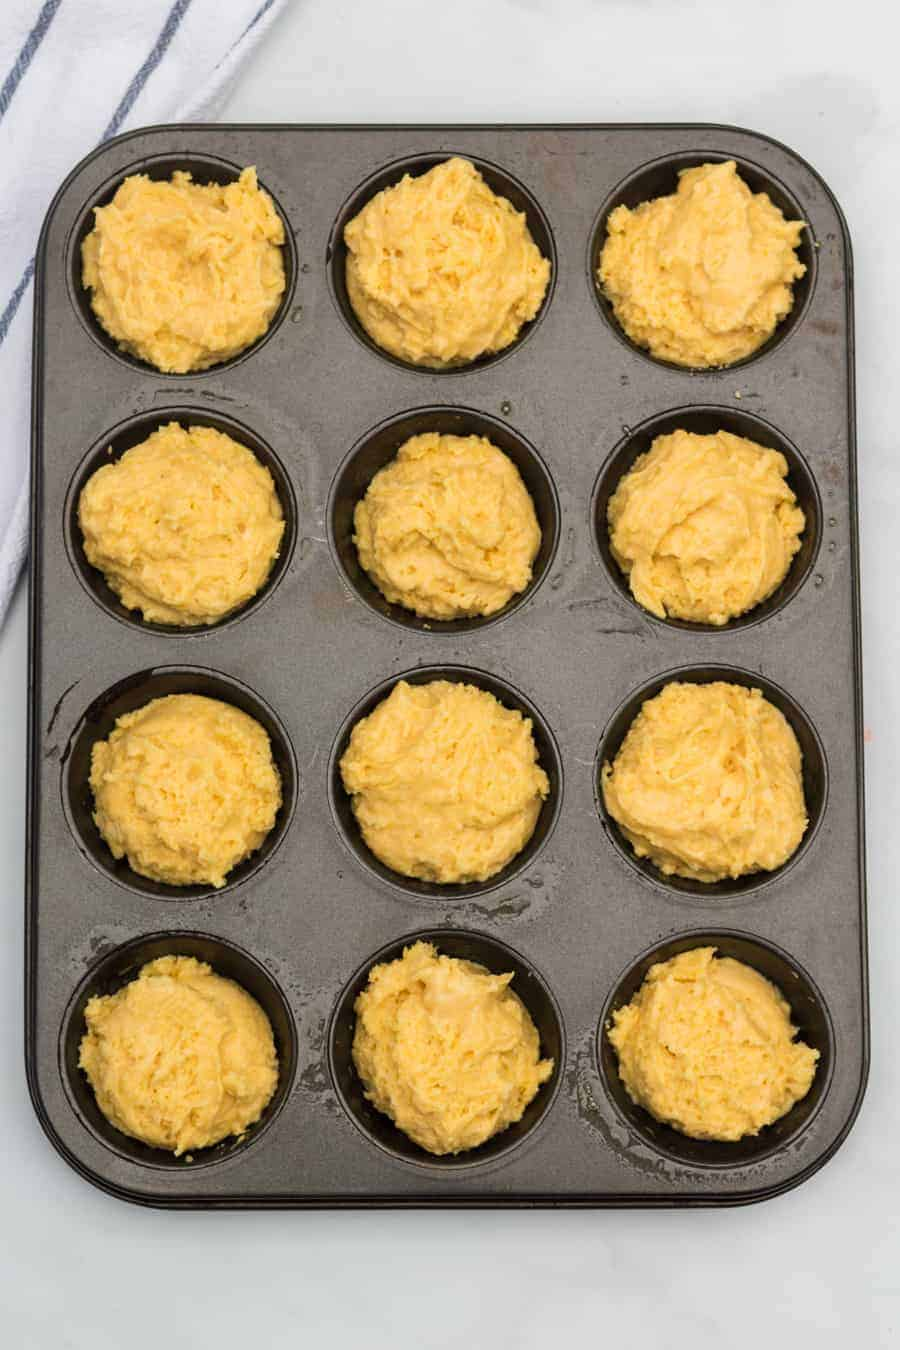 Corn muffin batter in a muffin pan waiting to go into the oven.